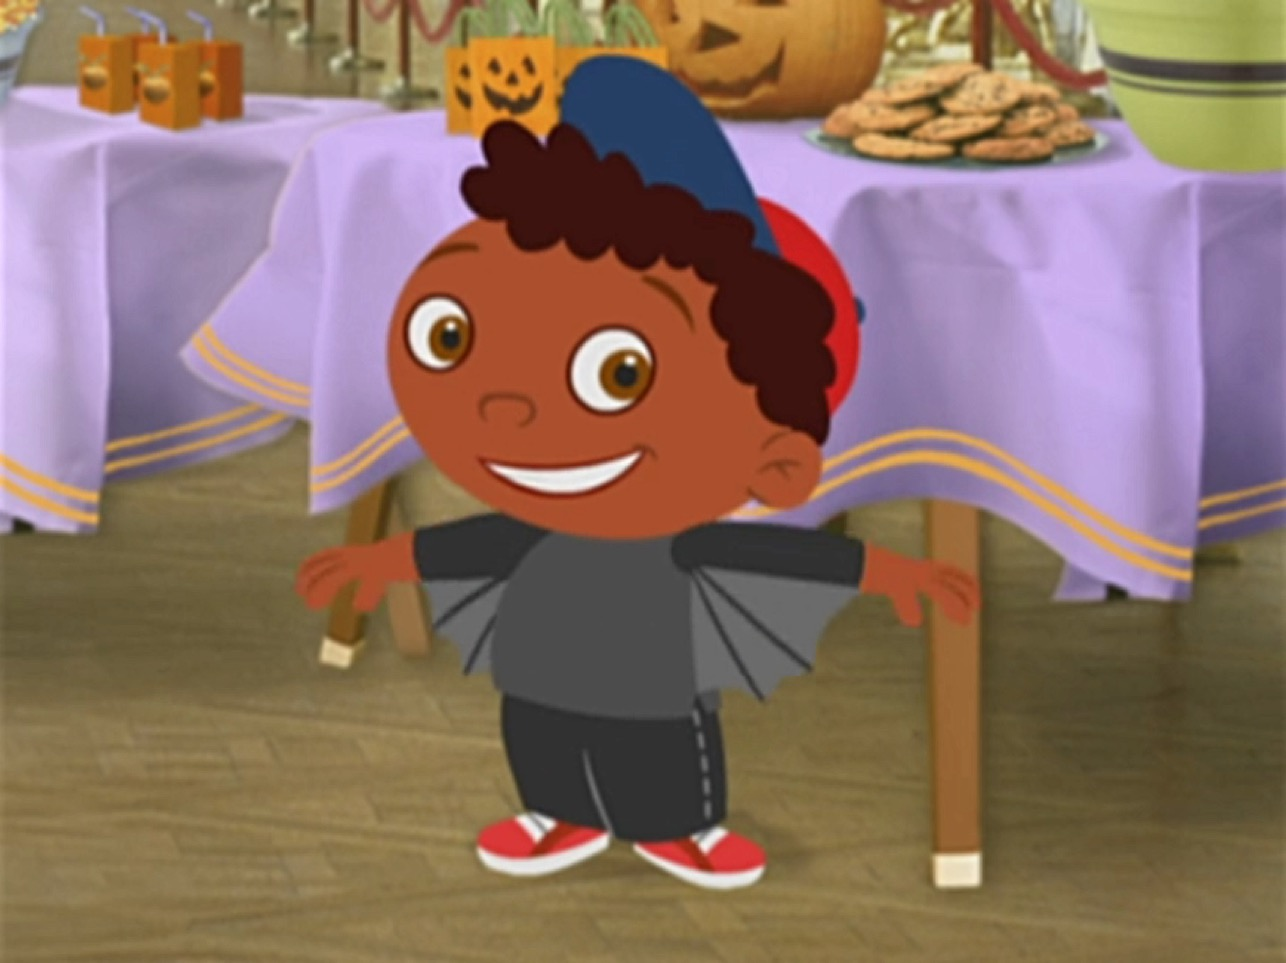 Uncategorized Quincy Little Einsteins quincy disney wiki fandom powered by wikia little einsteins bat halloween